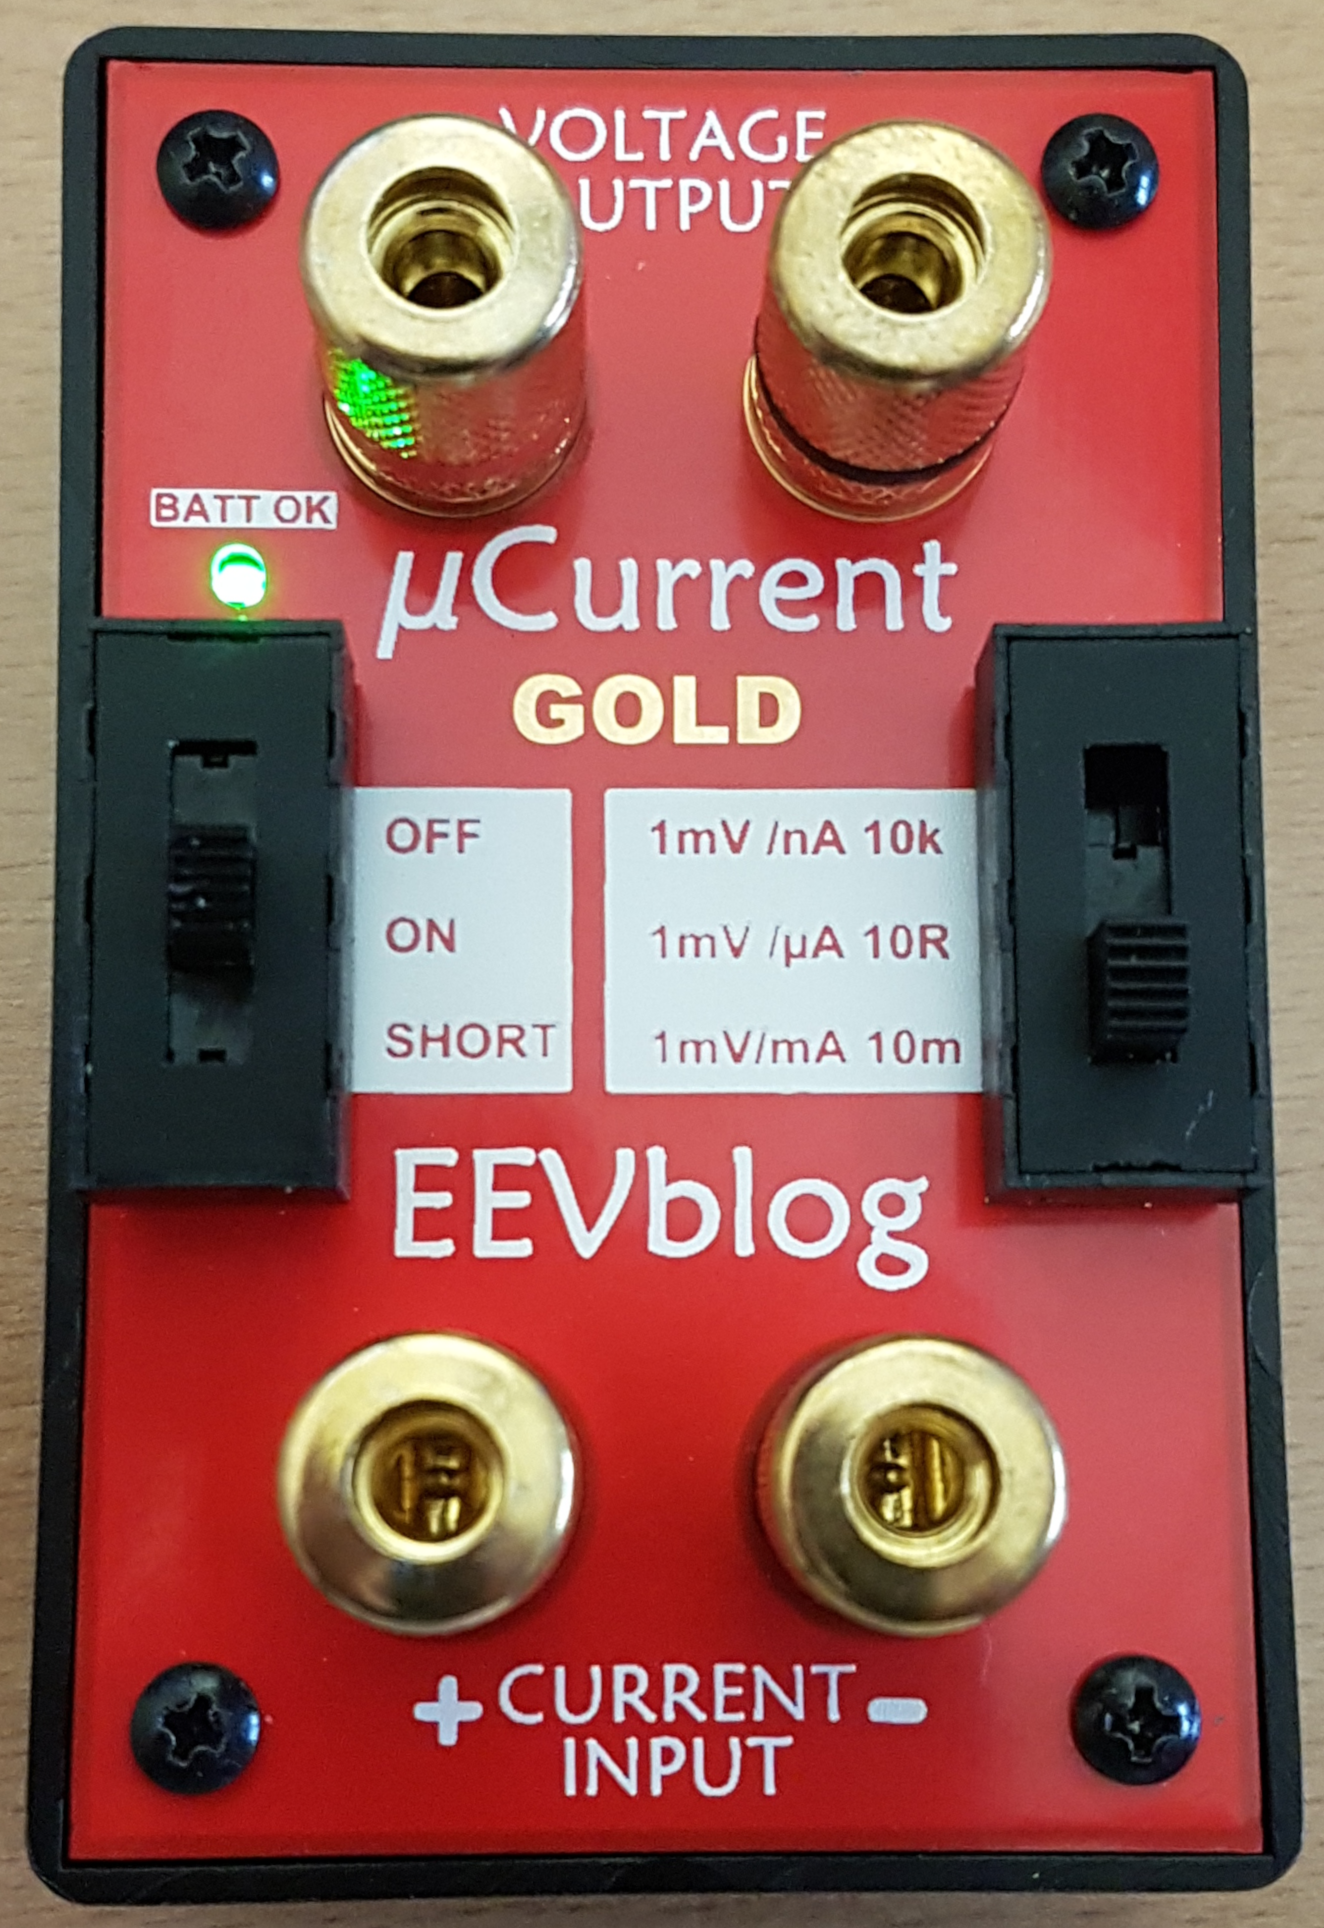 uCurrent%20Gold%20rev5%20-%20With%20modified%20Led